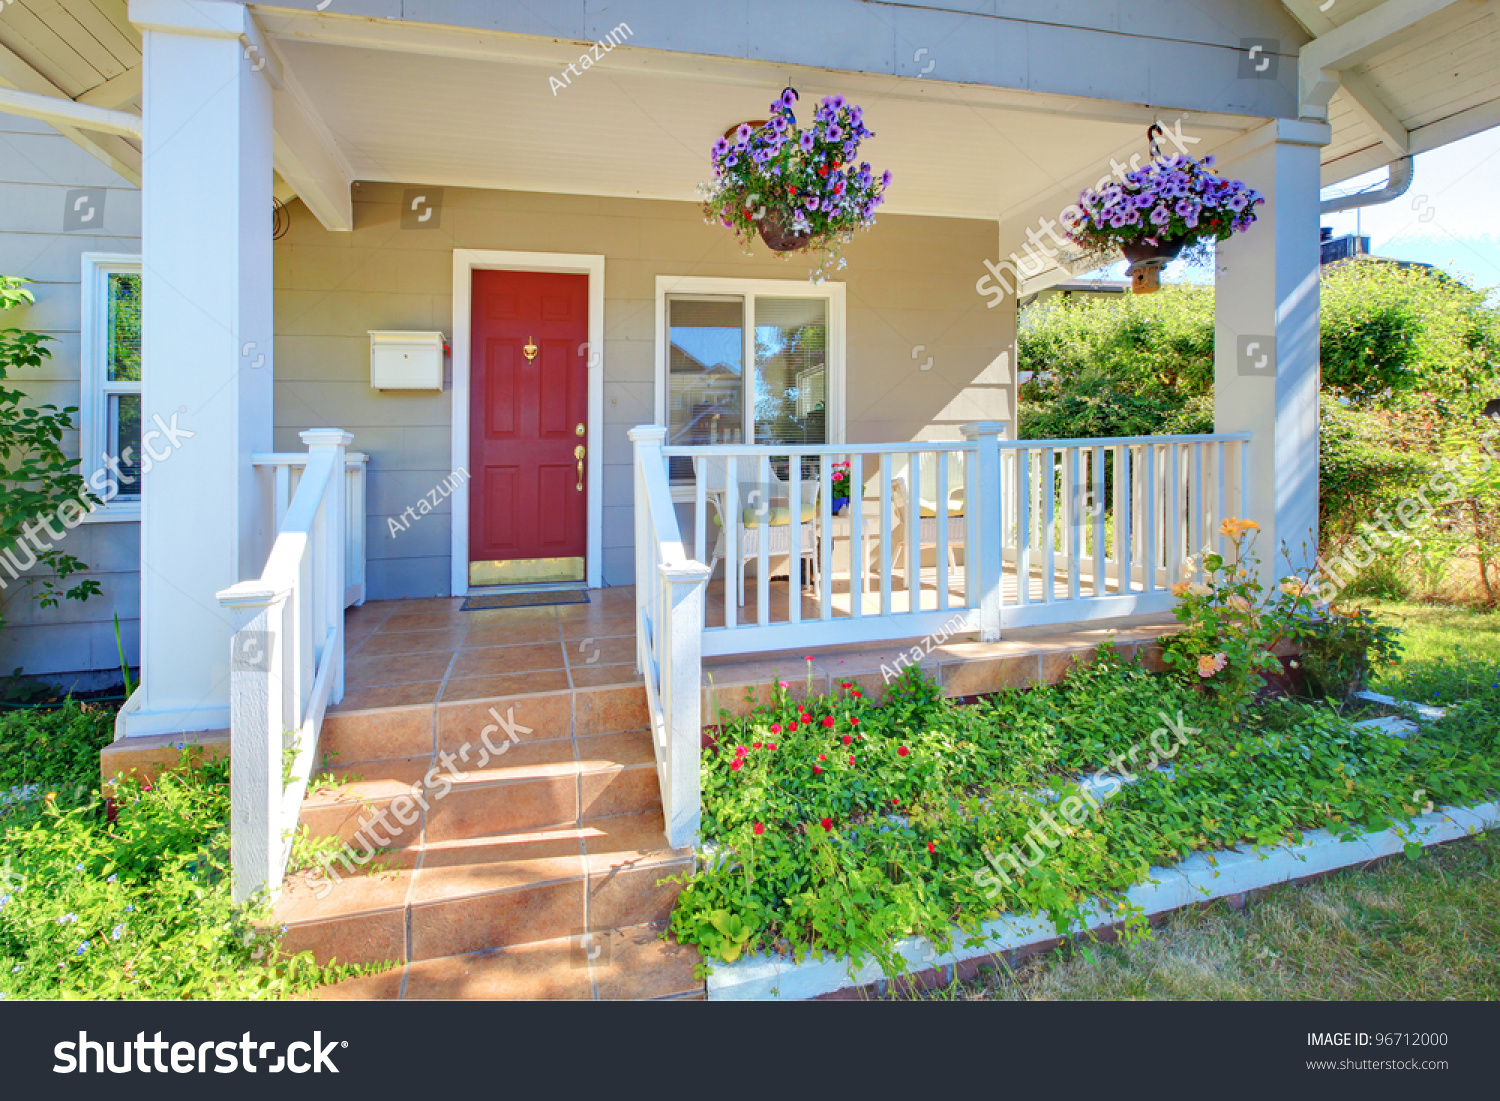 grey house porch red door white stock photo 96712000 shutterstock. Black Bedroom Furniture Sets. Home Design Ideas